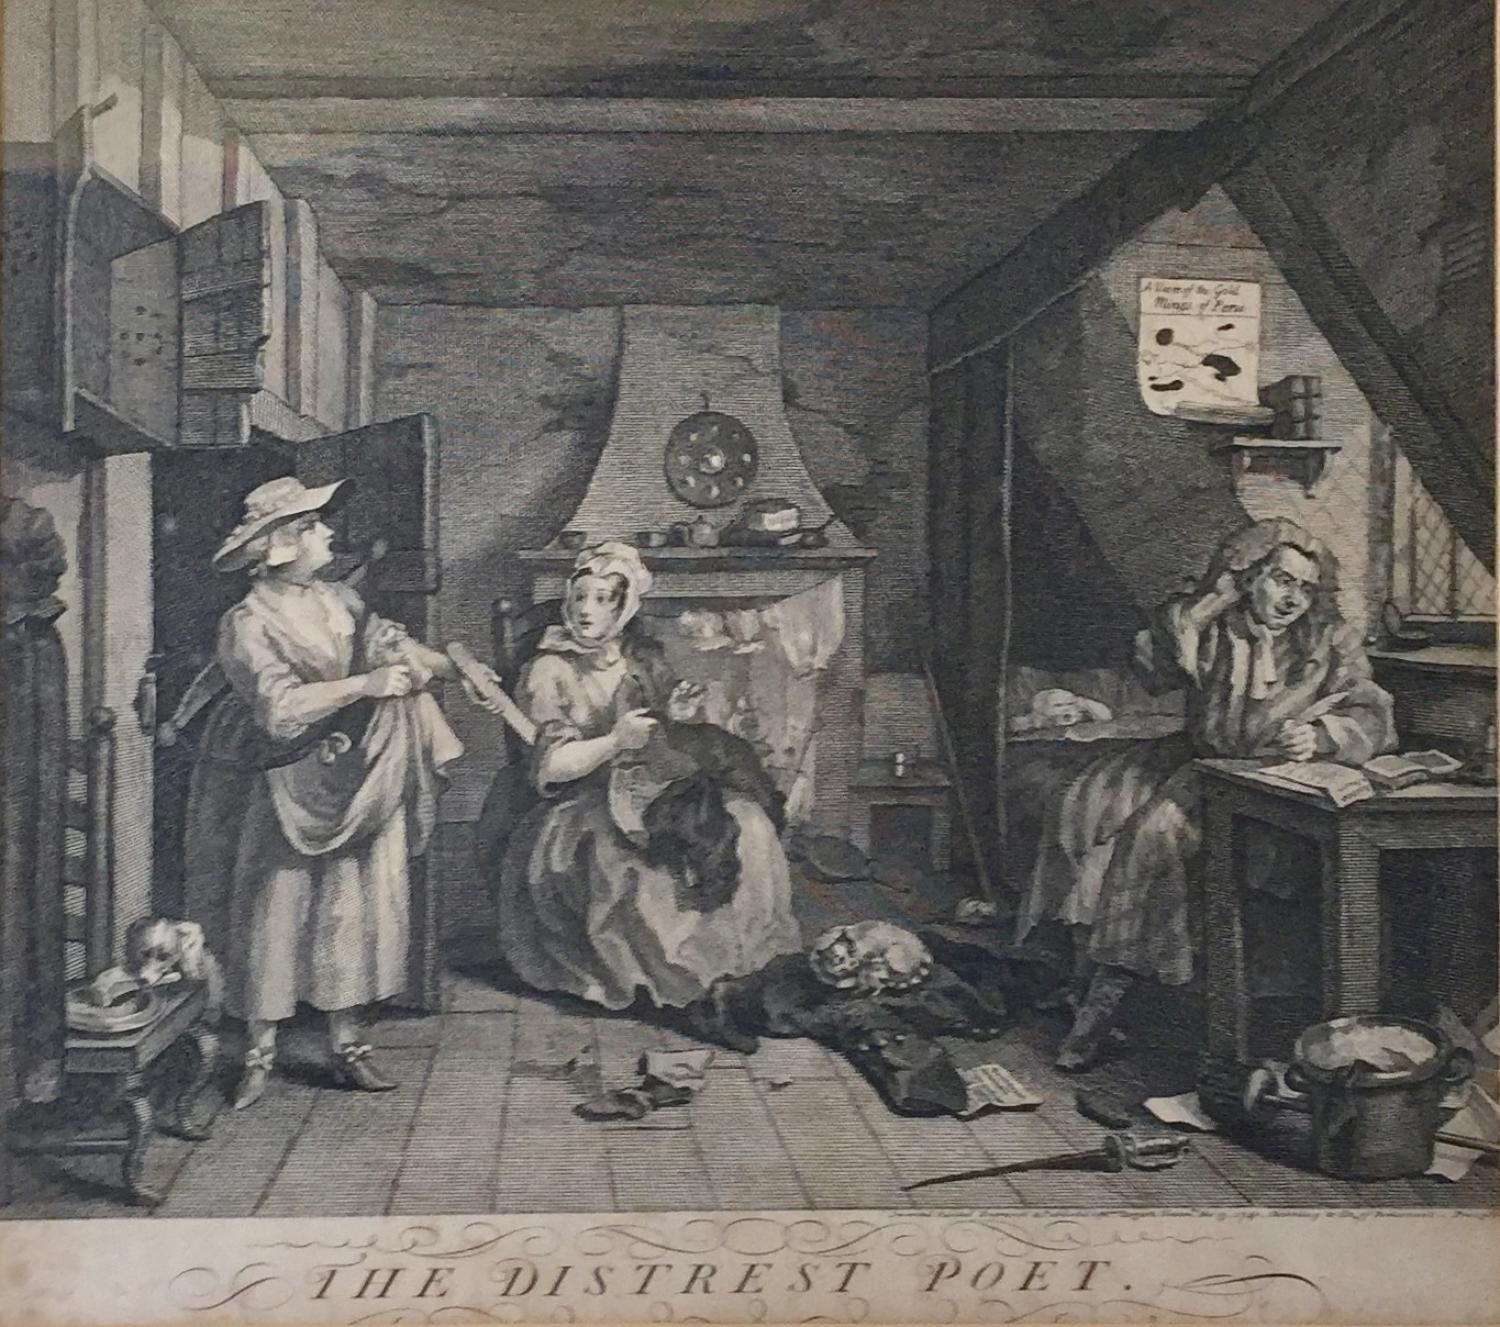 William Hogarth, The Distrest Poet, Engraving 1740